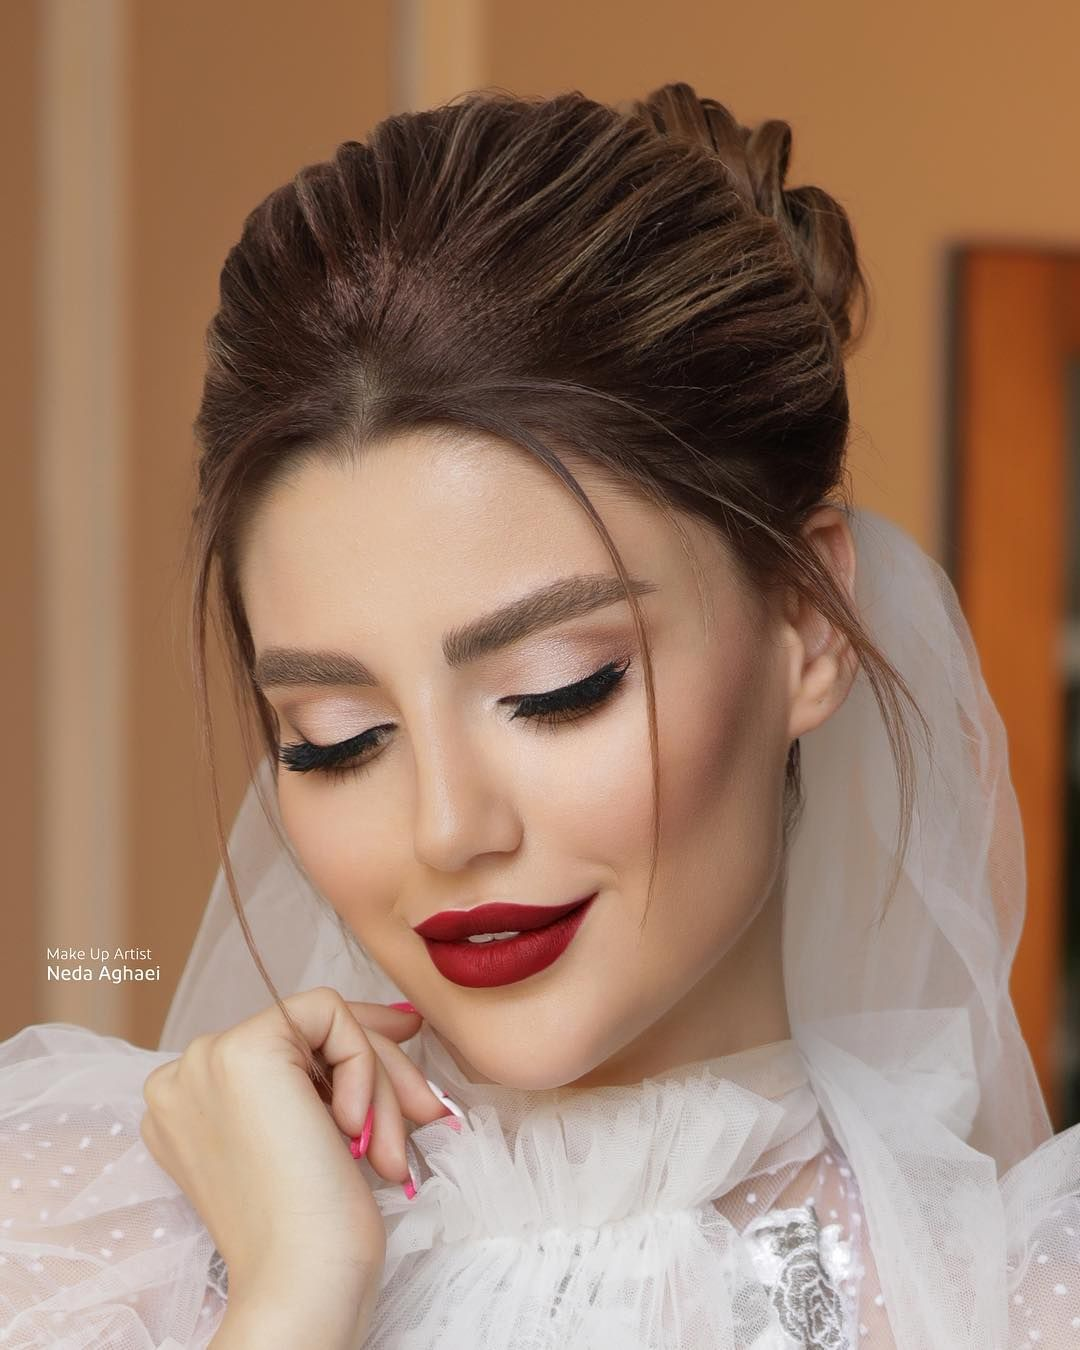 Wedding Hairstyles Dress Girl Beauty Beautiful Woman Fashion Show King Queen White Celebrity Con Wedding Makeup Gorgeous Wedding Makeup Wedding Hair And Makeup